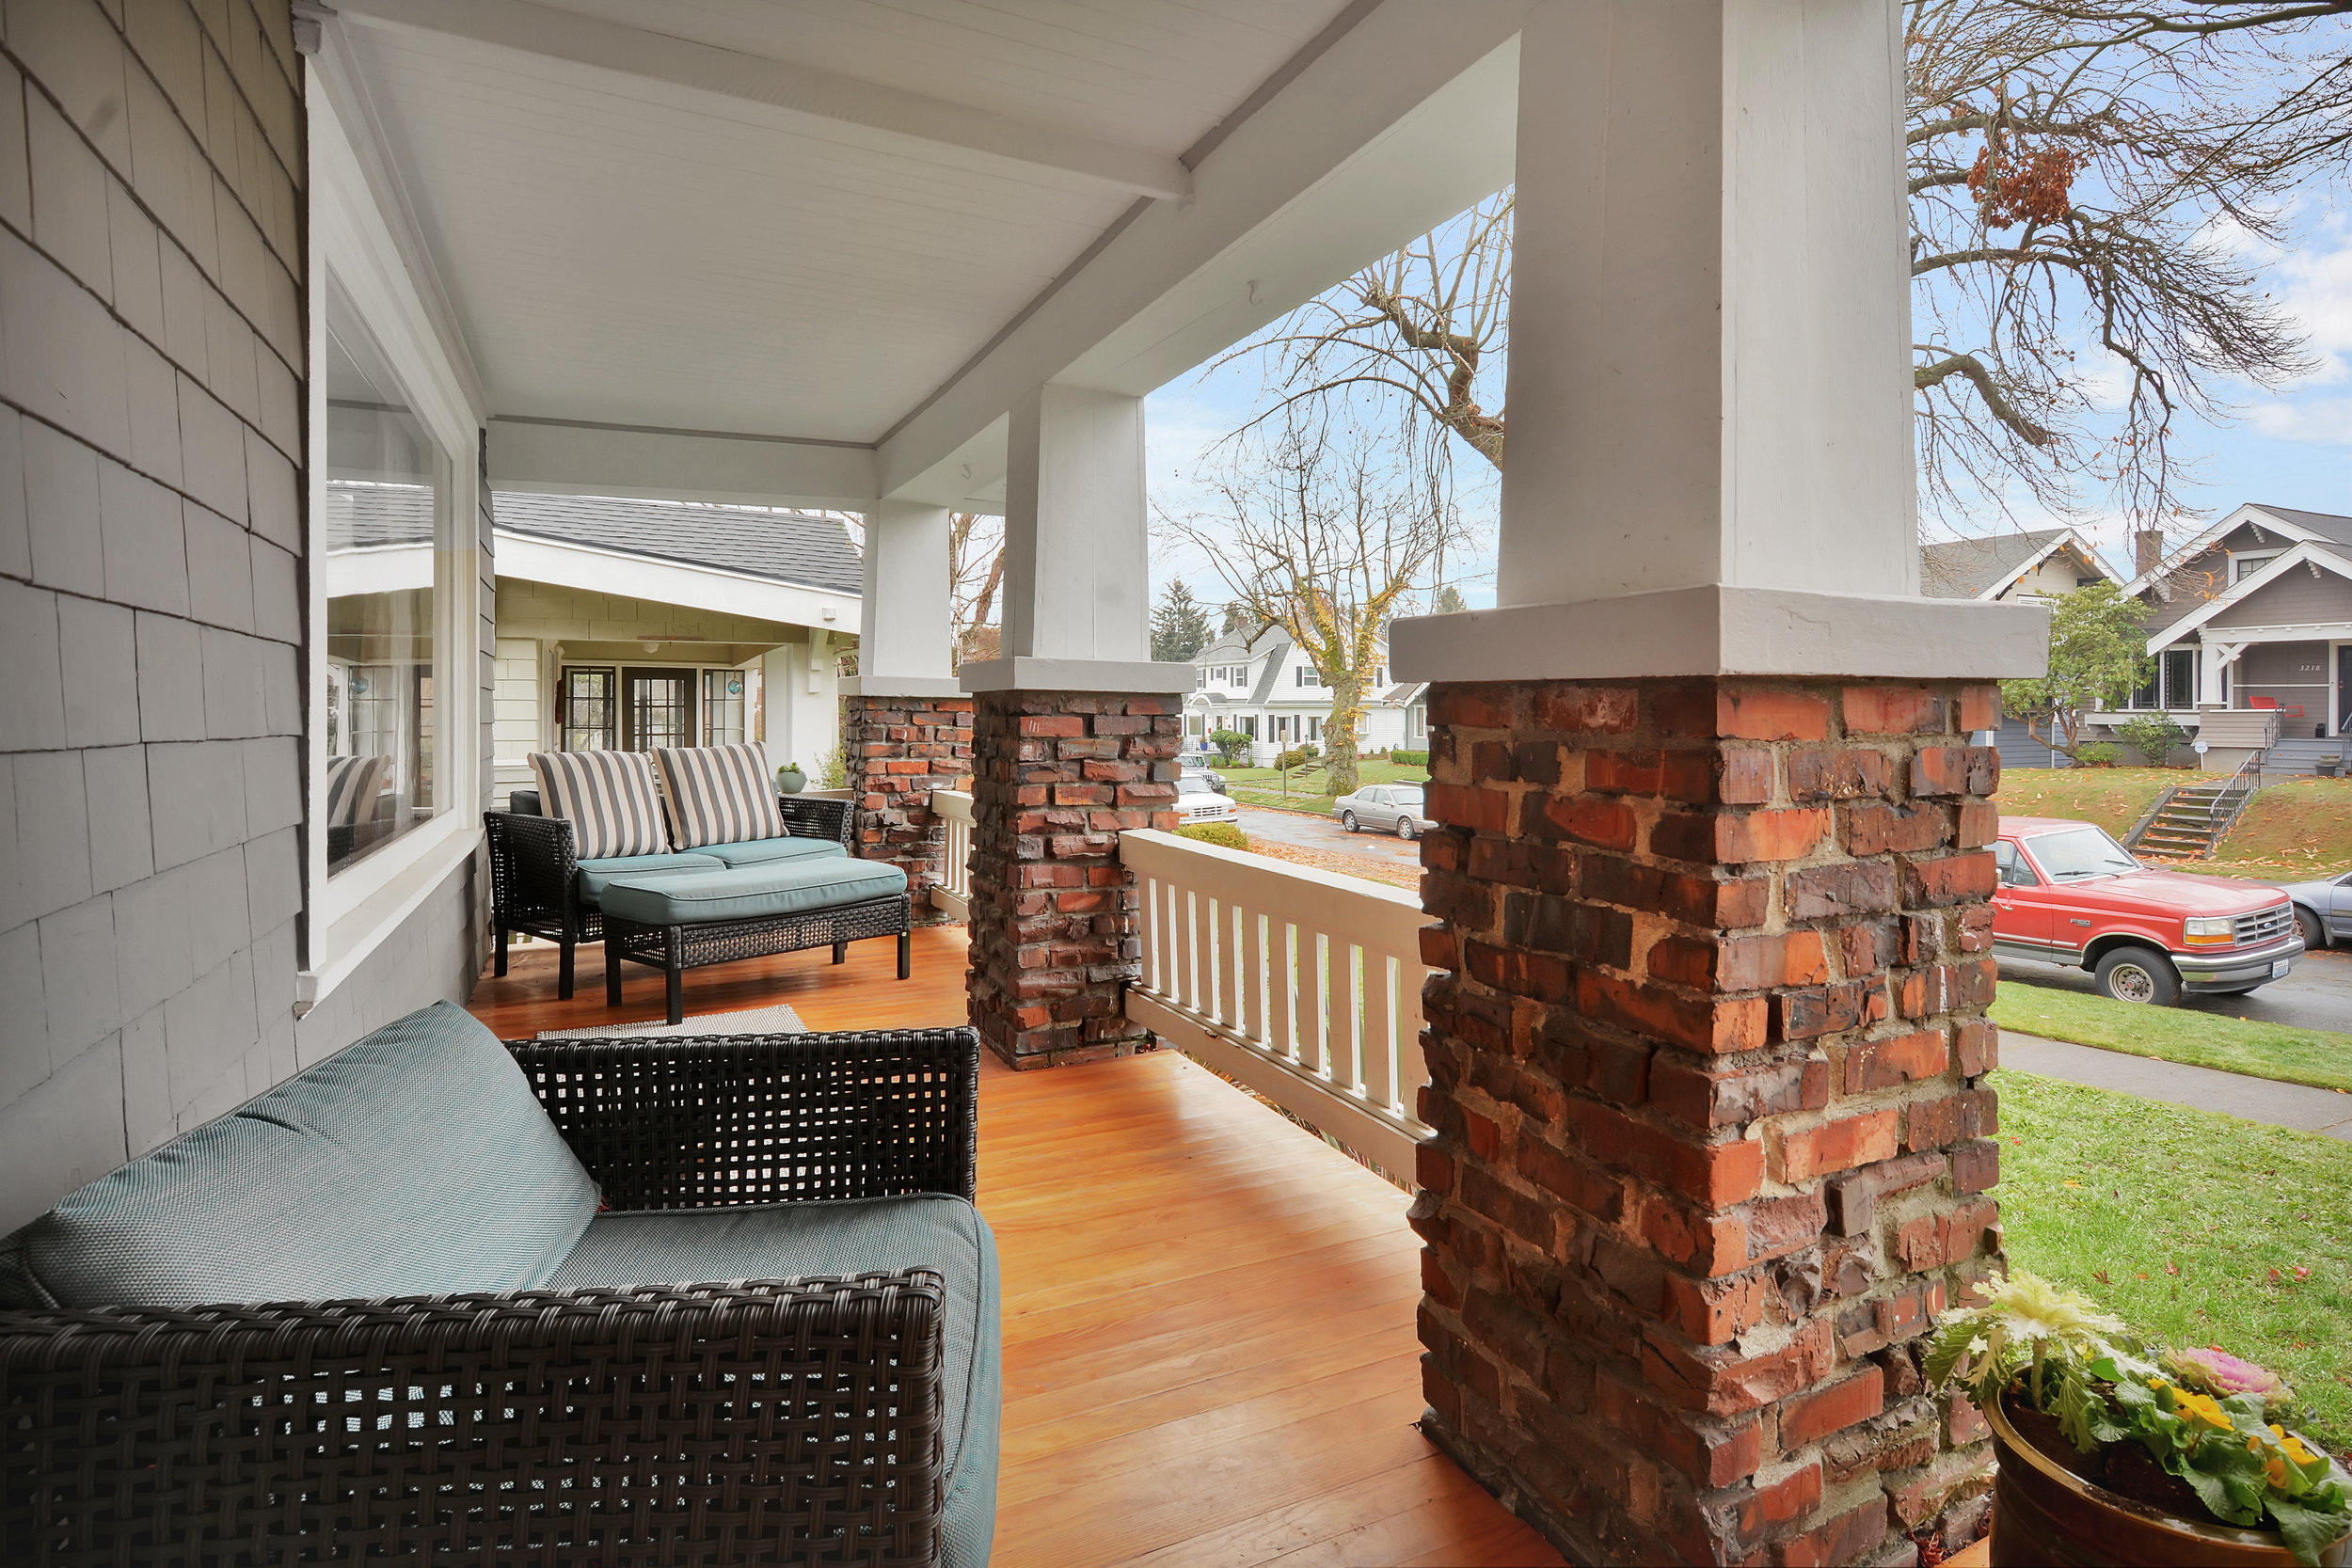 Brick and wooden pillars support deep eaves covering the porch across the front of the home.